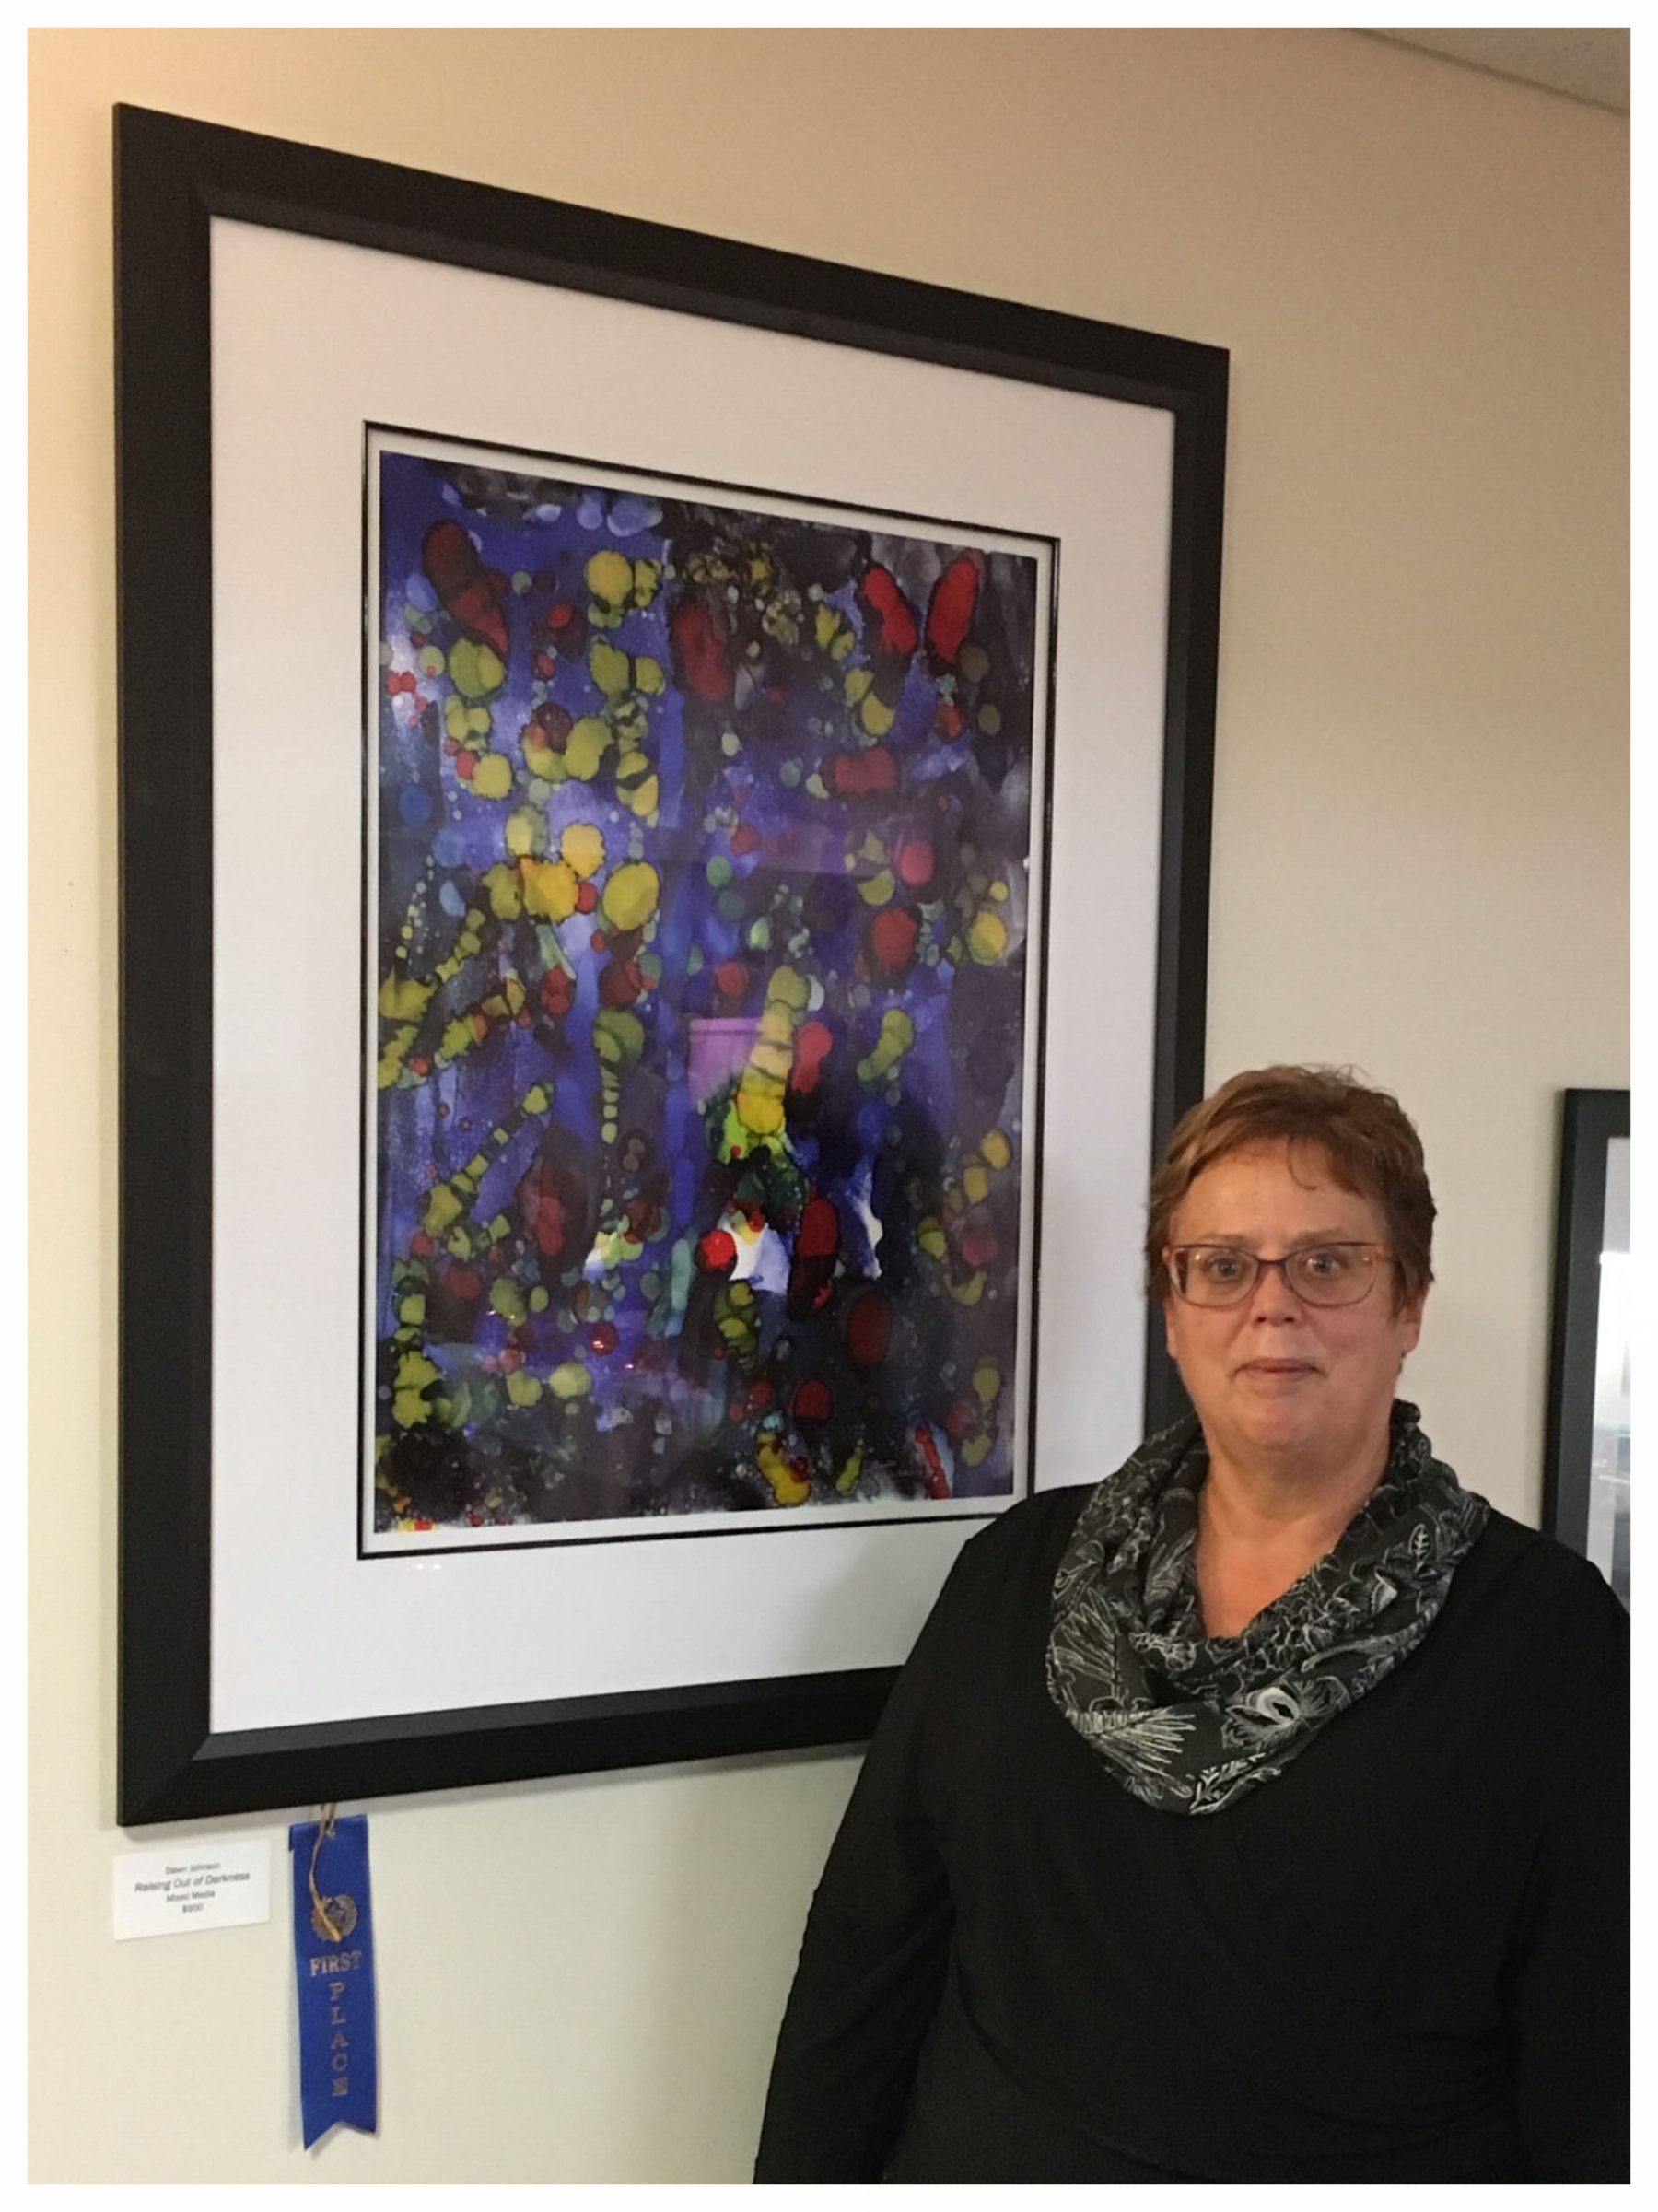 1st Place - 12th Annual Henry Rouse Juried Art Show